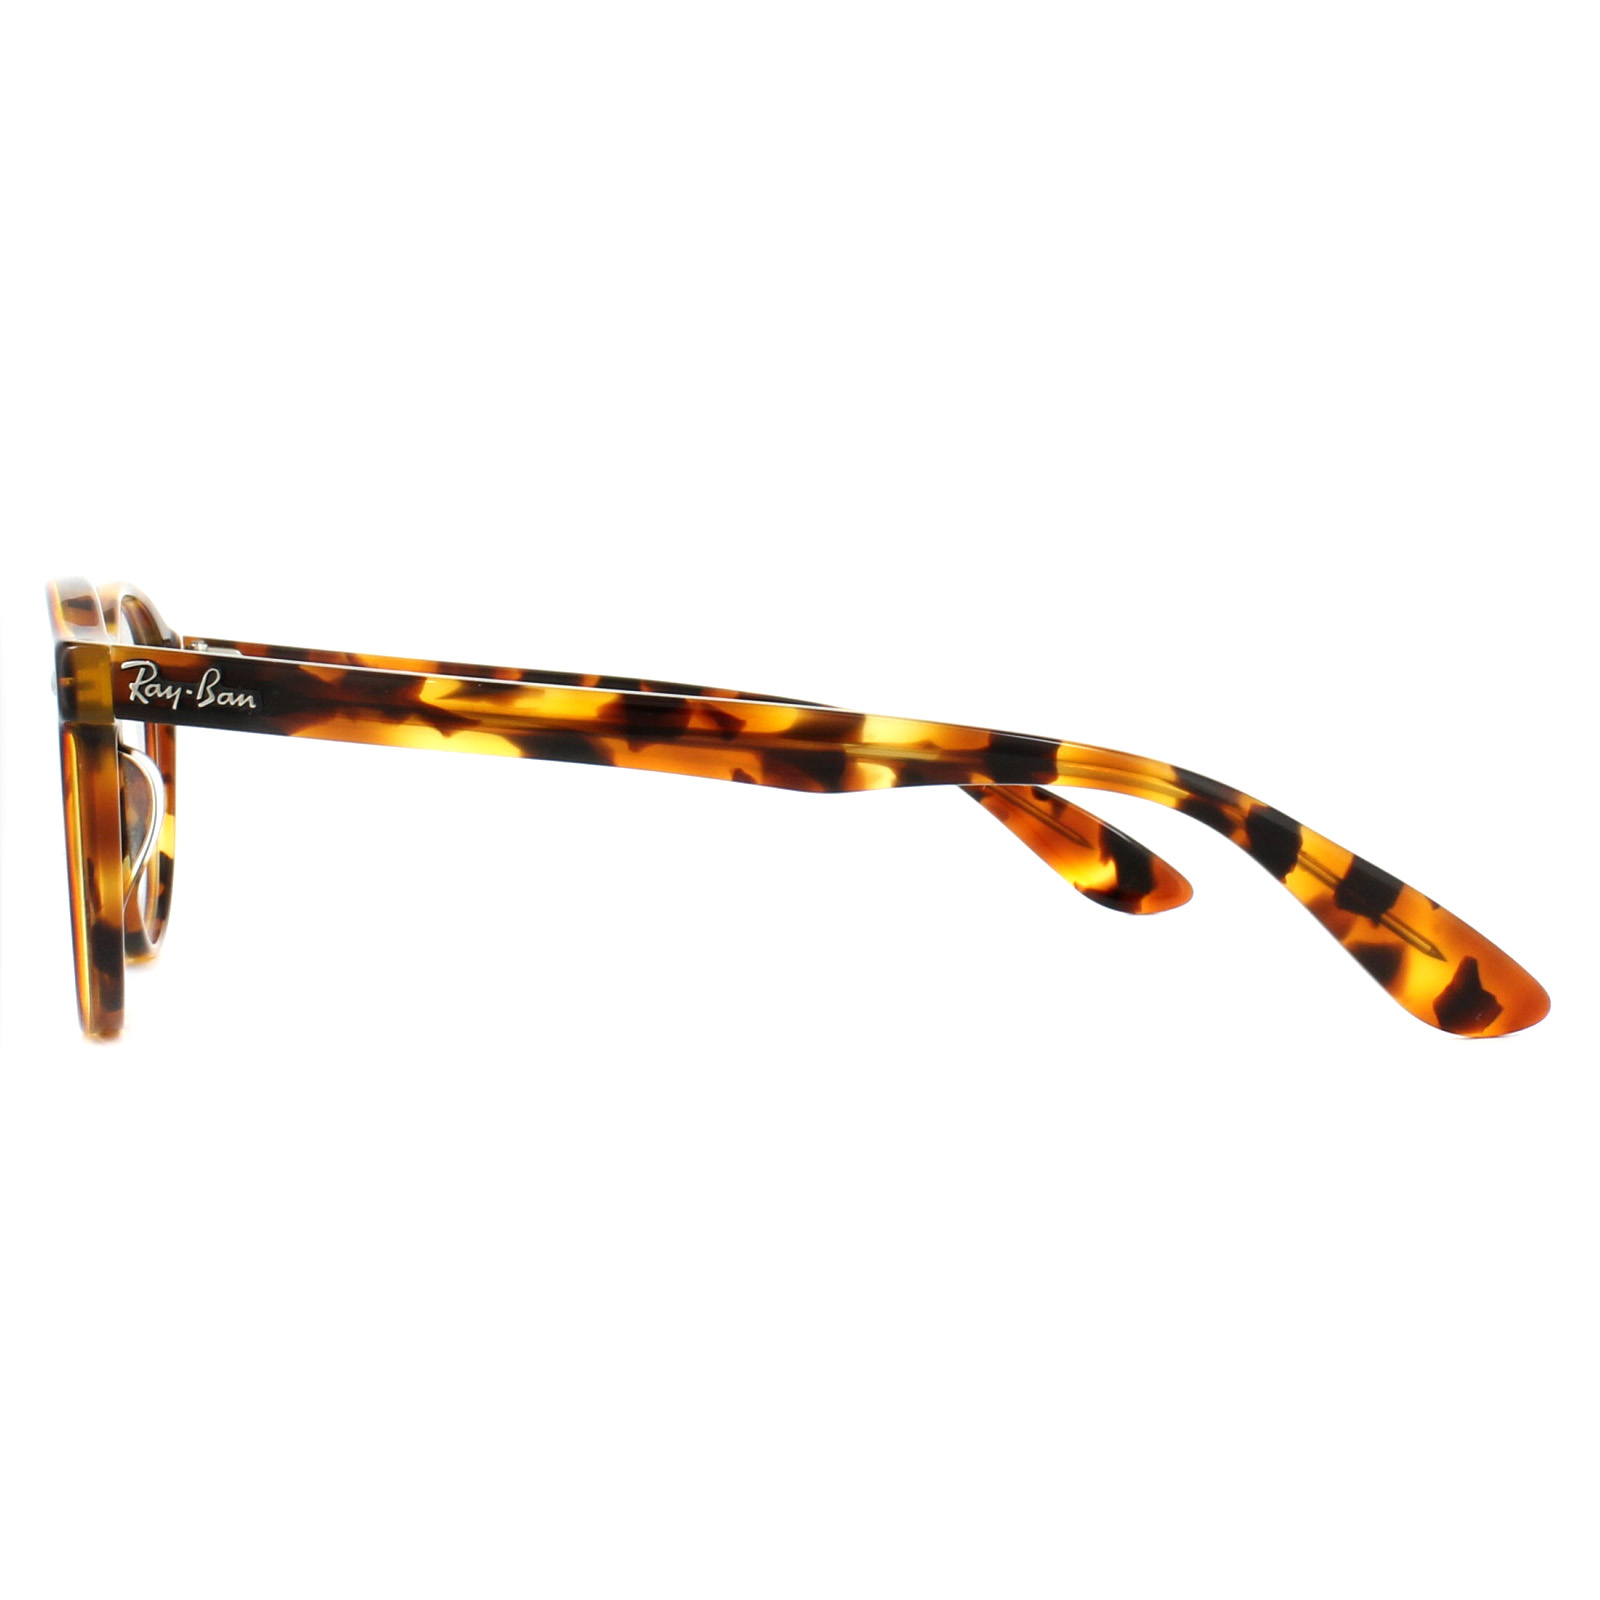 5bd74e5f83 Sentinel Ray-Ban Glasses Frames 5283 5675 Top Havana Brown Yellow 51mm Mens  Womens